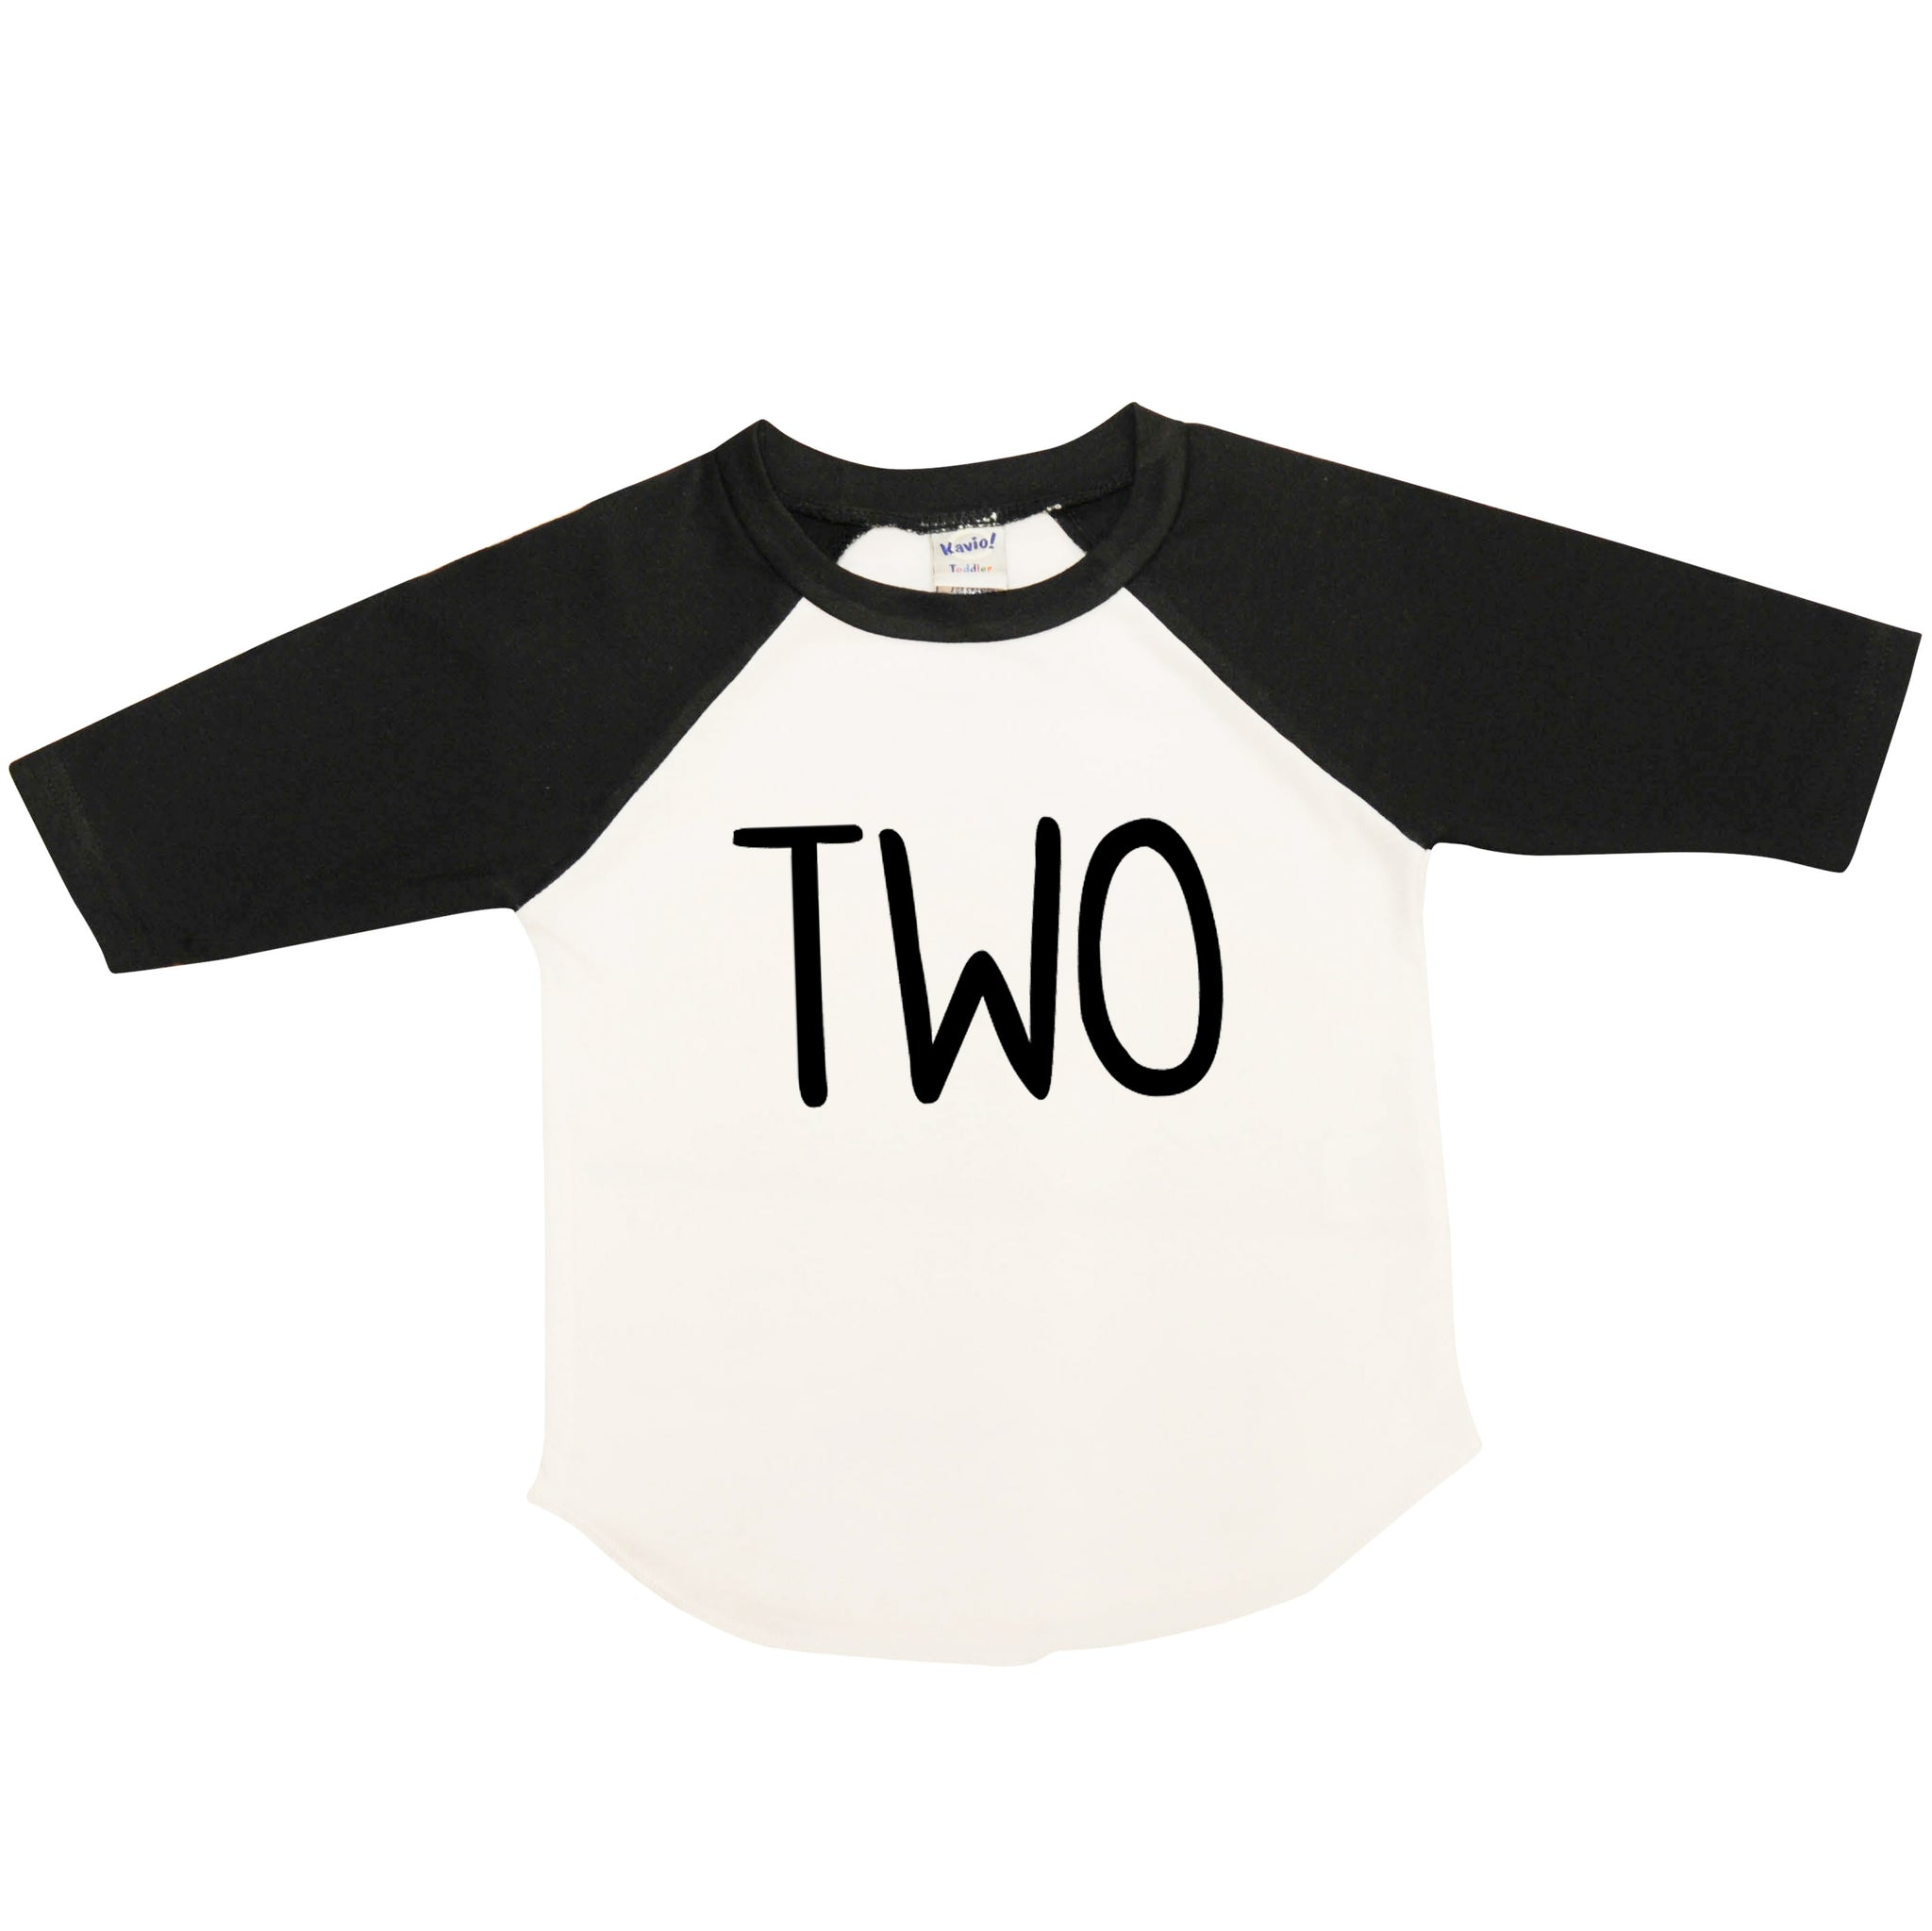 Boy's Second Birthday Shirt, Raglan Black and White, Two, Black Font Only 414